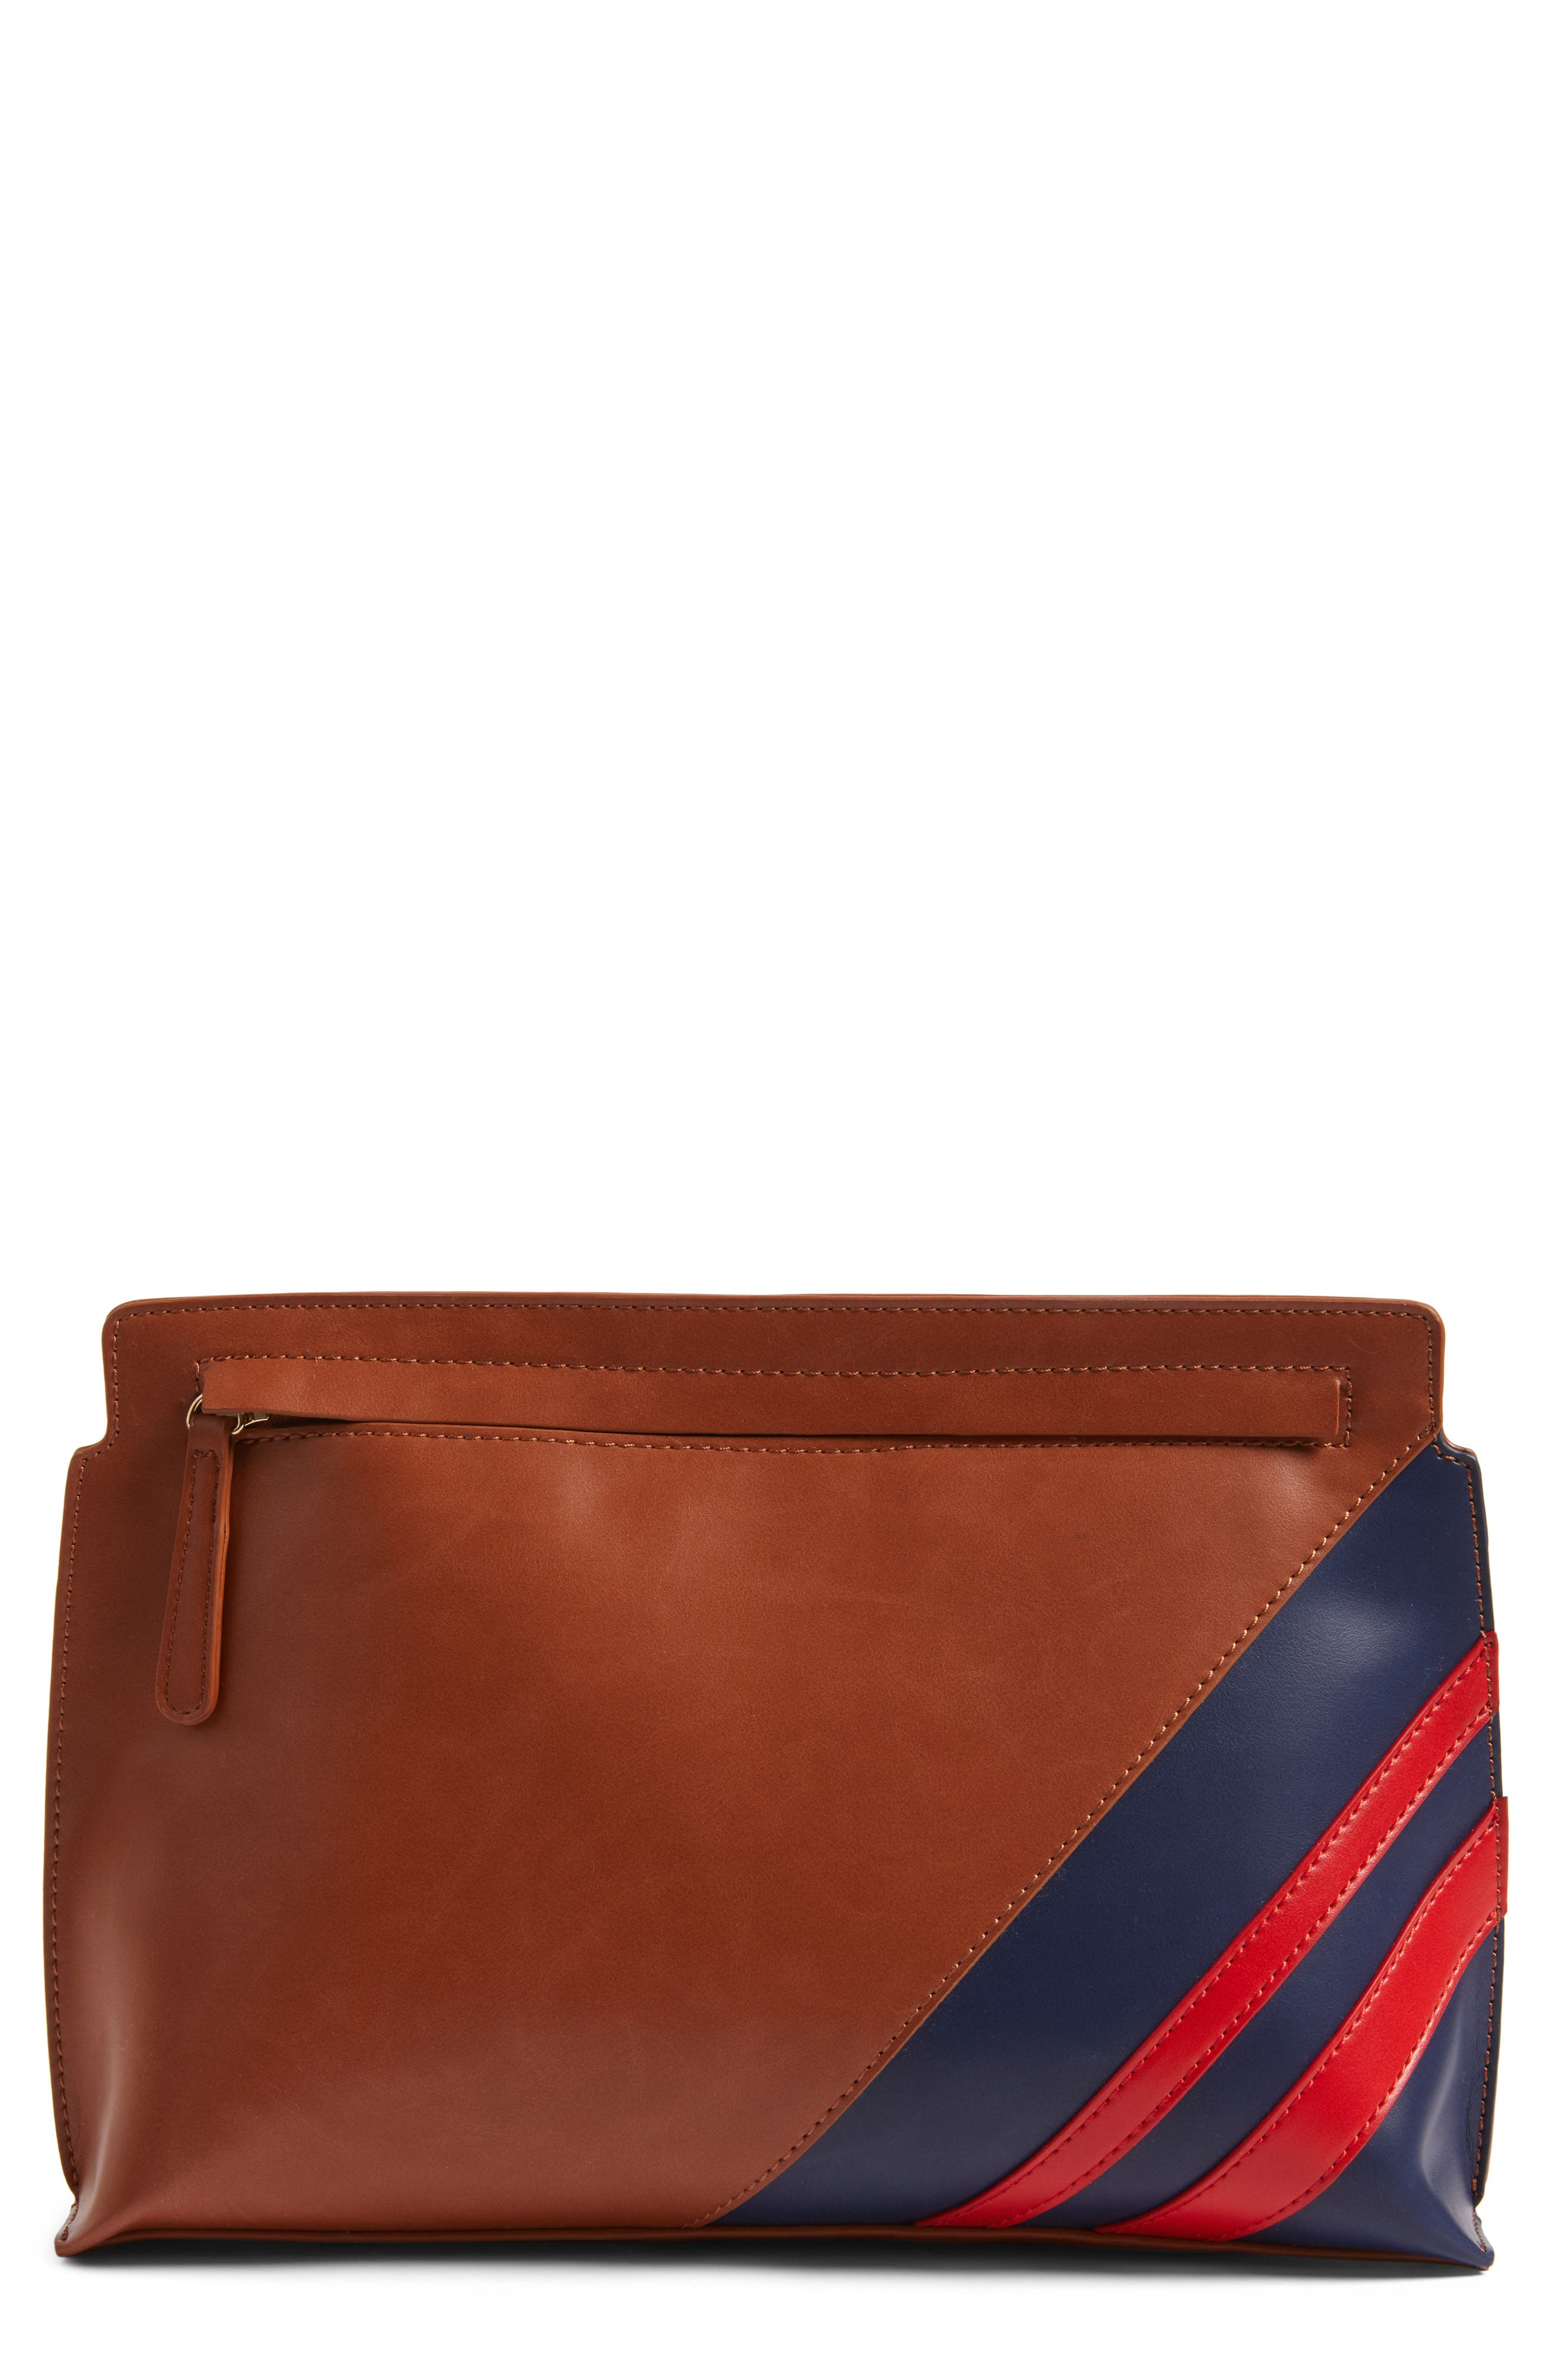 Alternate Image 1 Selected - BP. Stripe Faux Leather Clutch